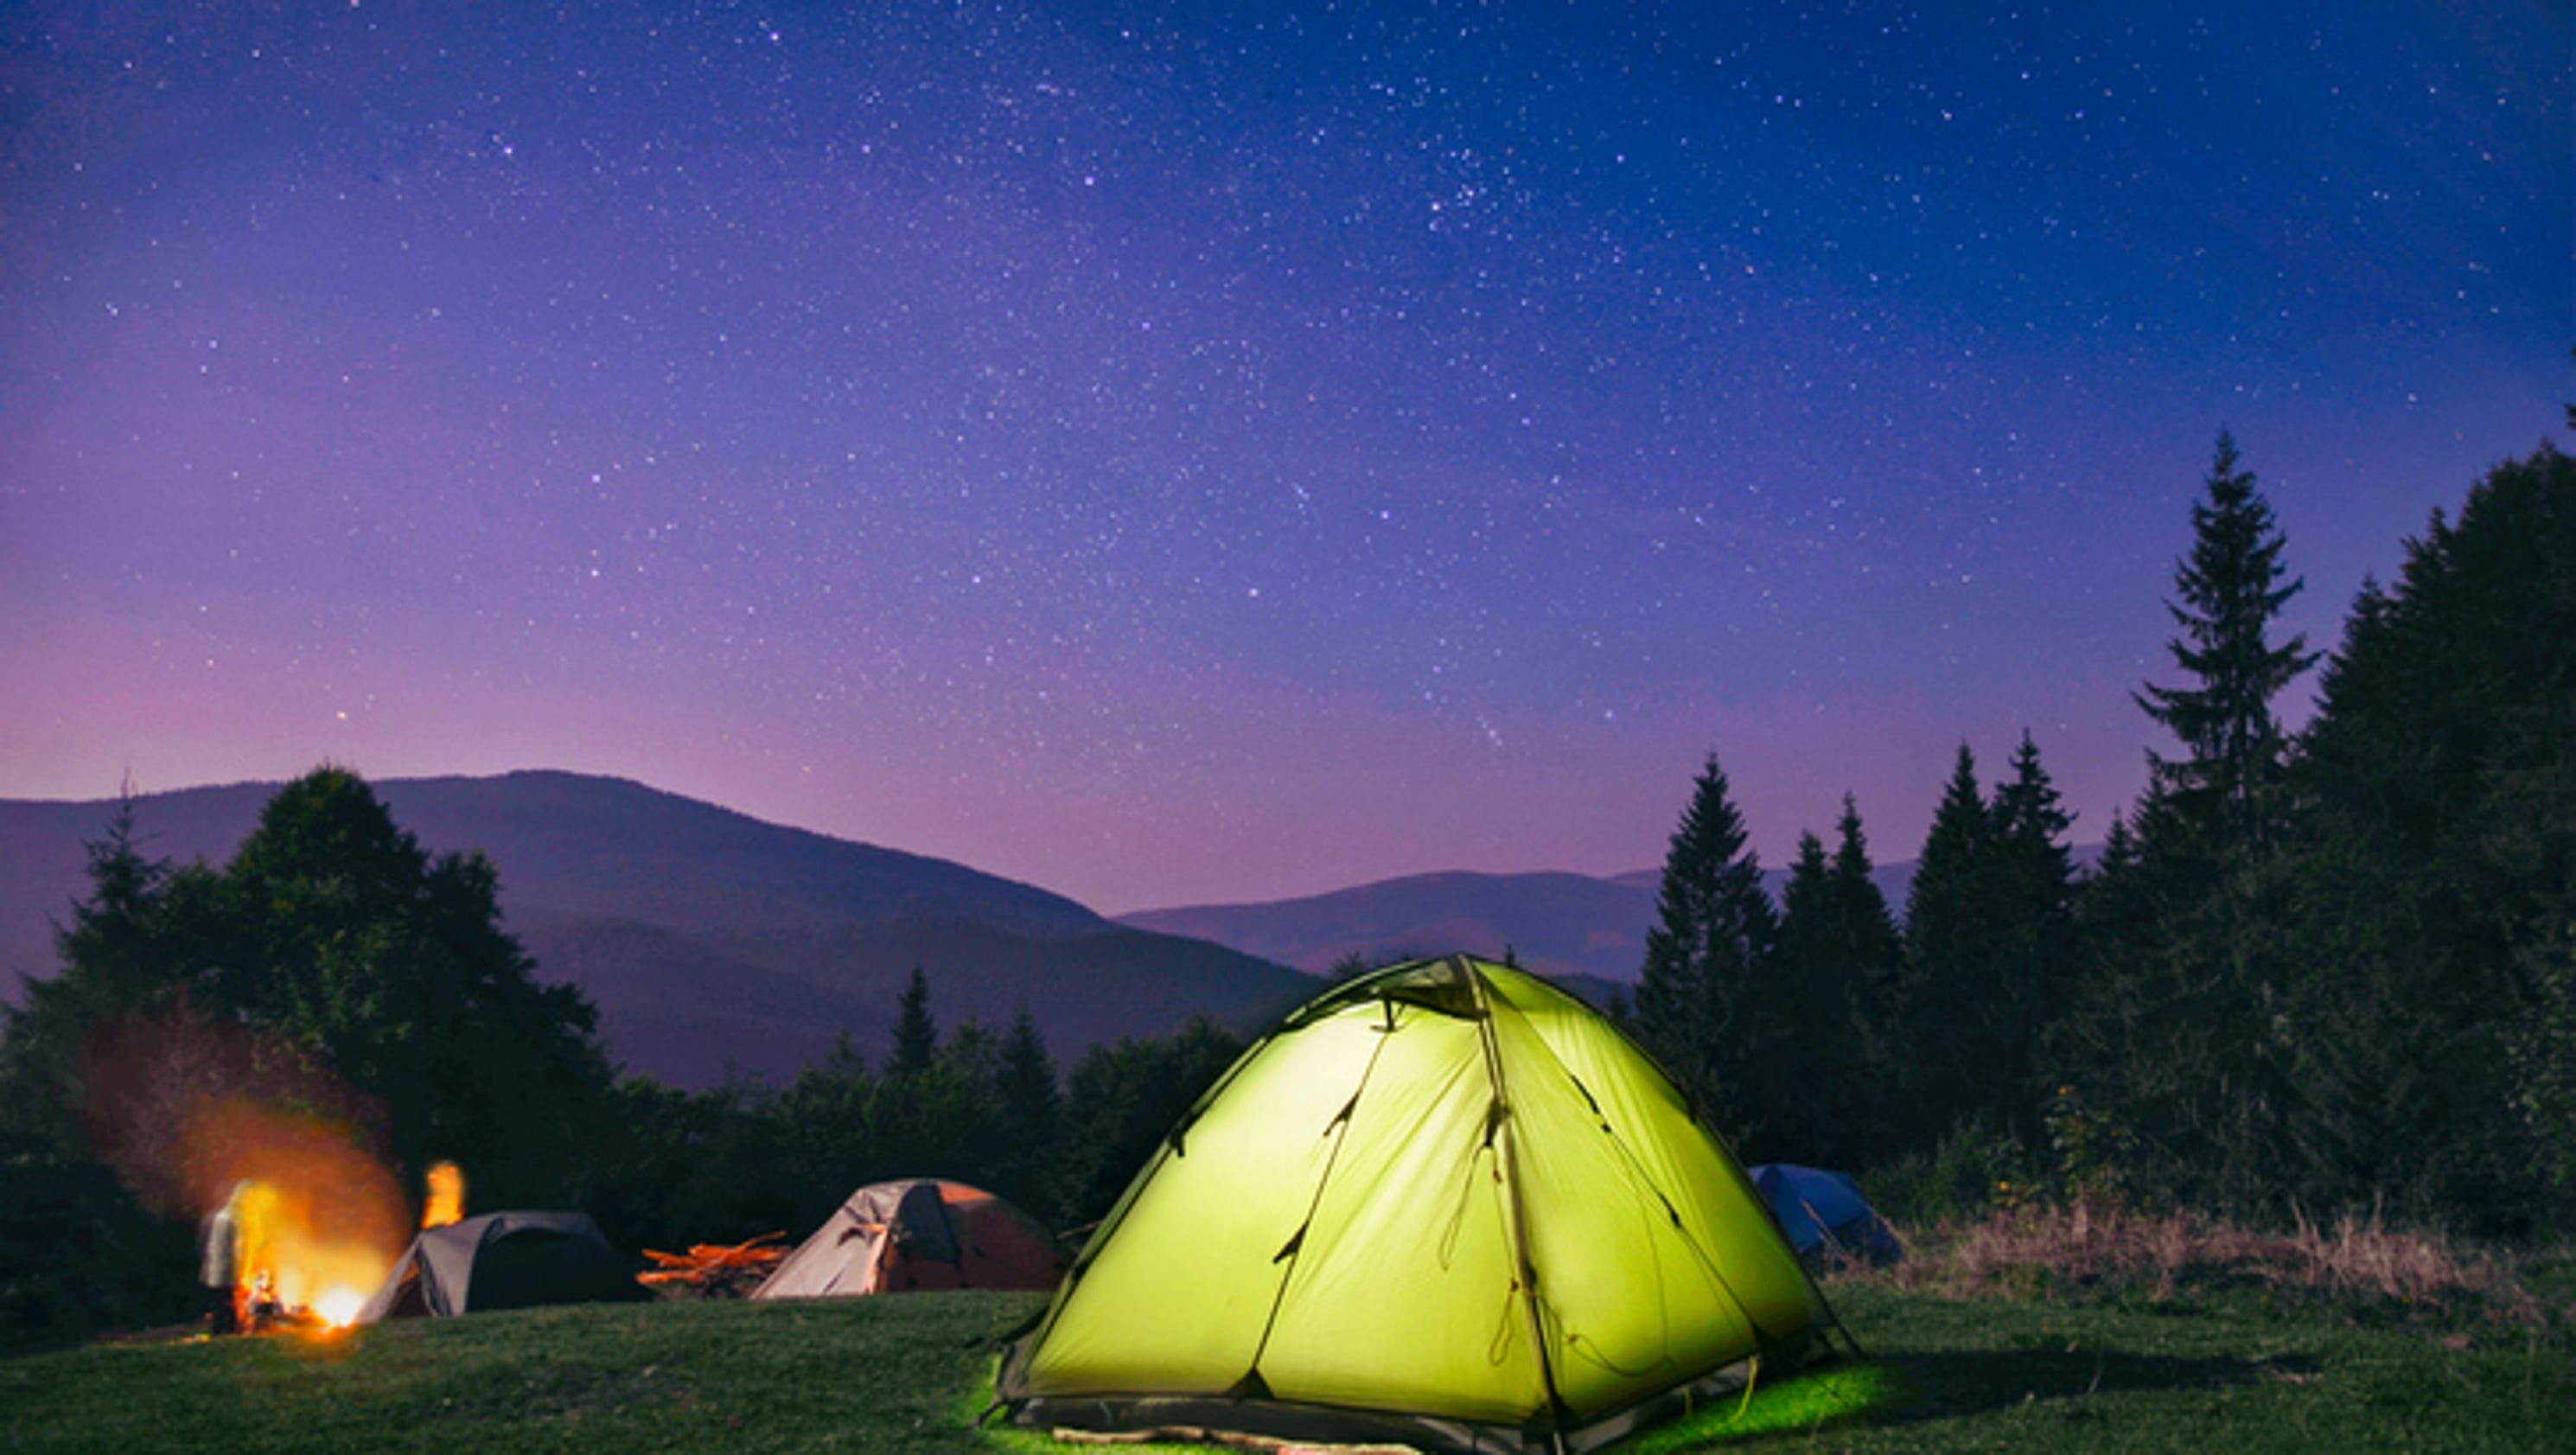 Starry Night Camping Sweepstakes